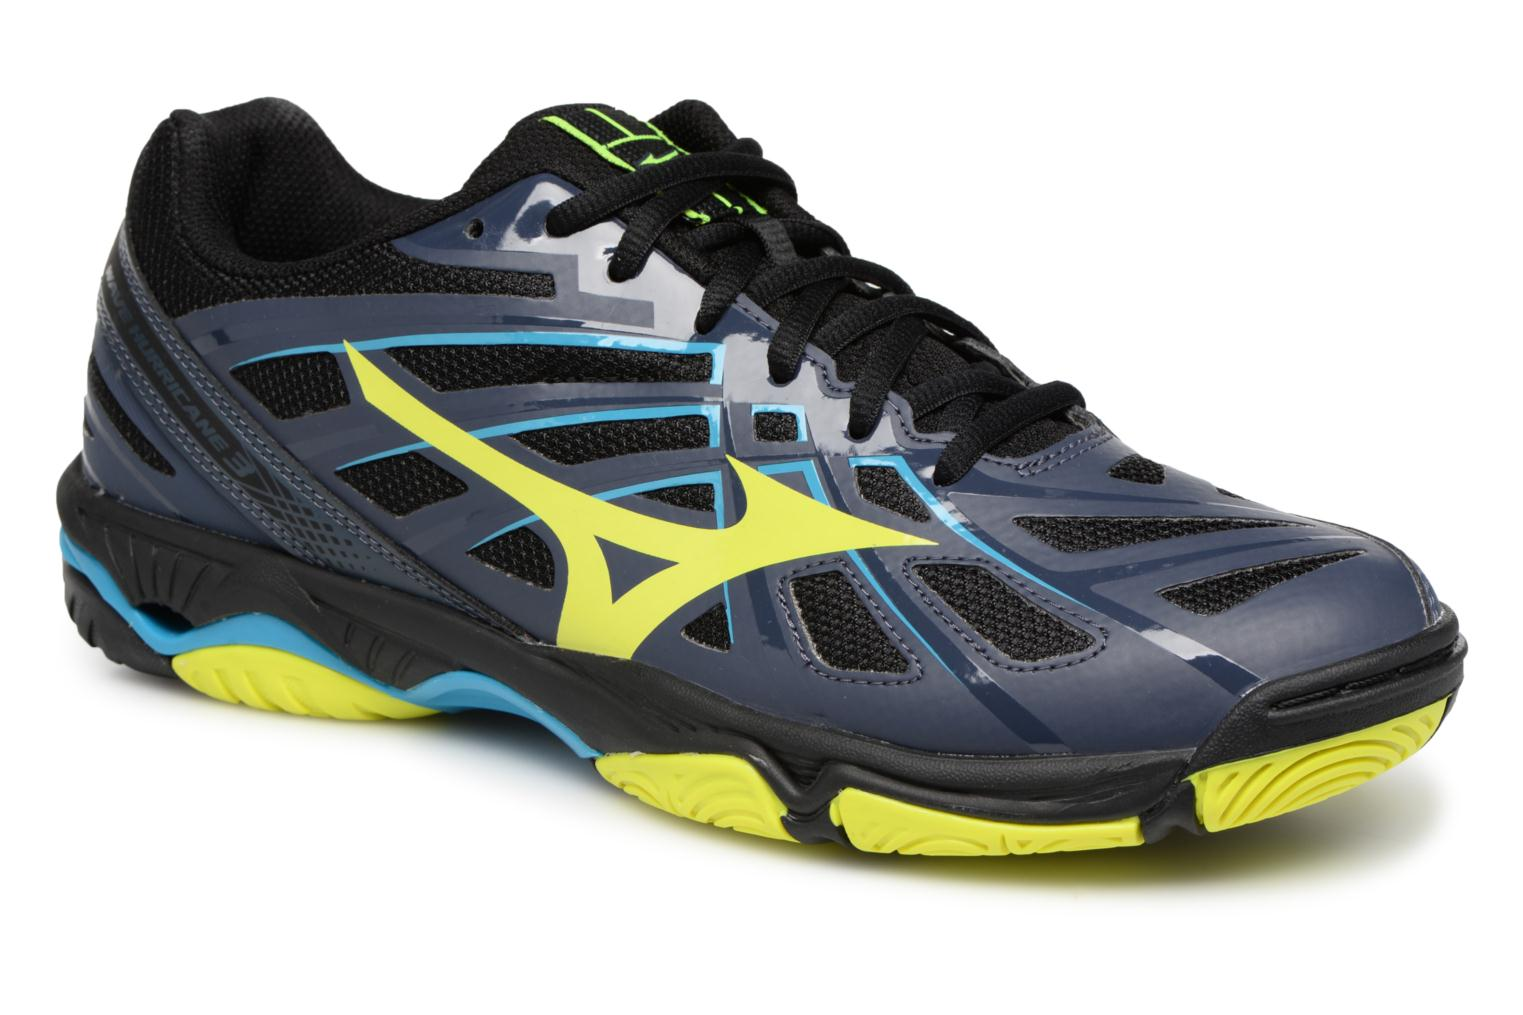 Sportschoenen Wave Hurricane 3 by Mizuno